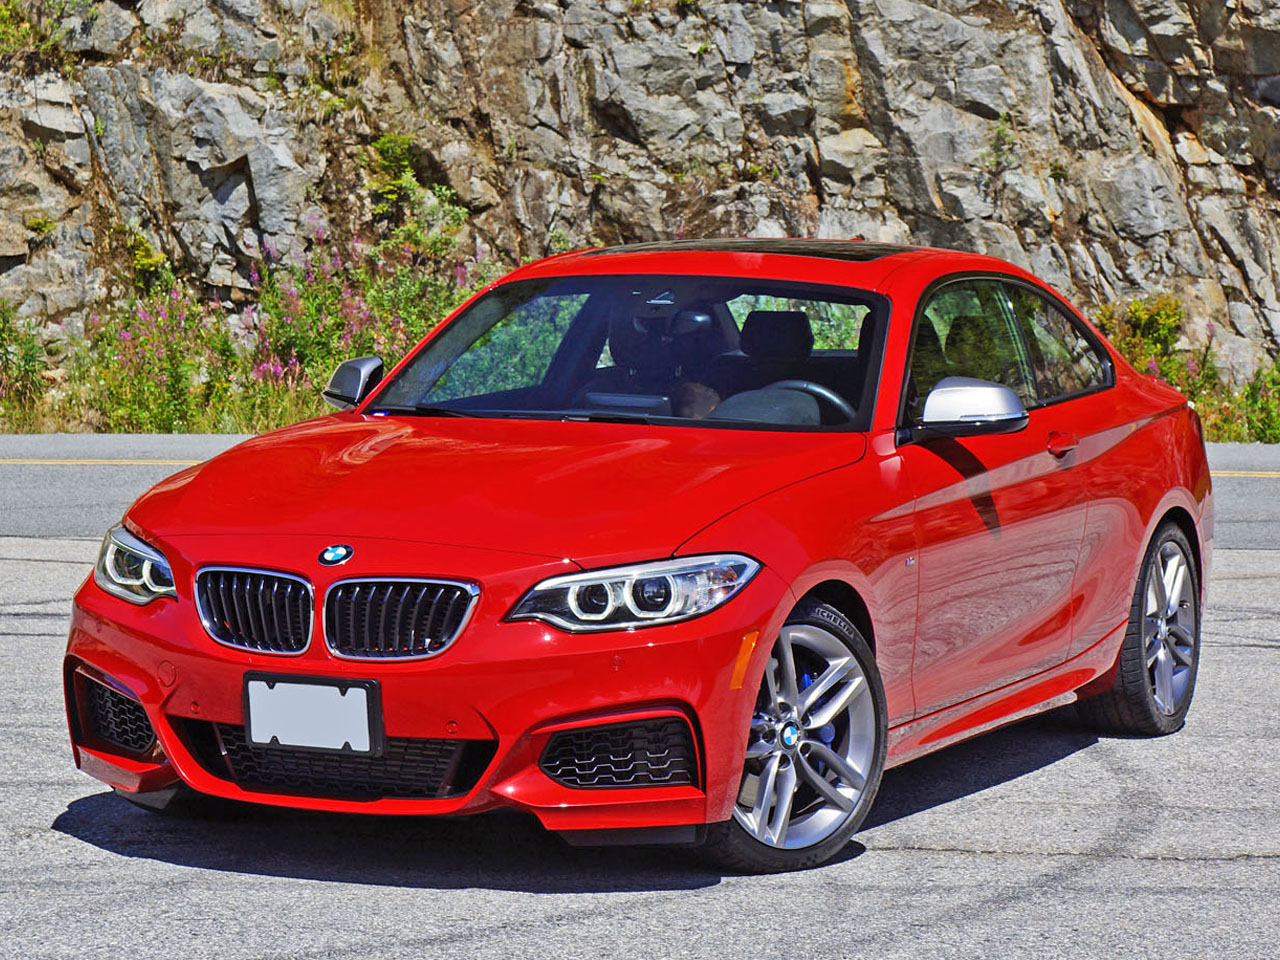 2015 m235i curb weight